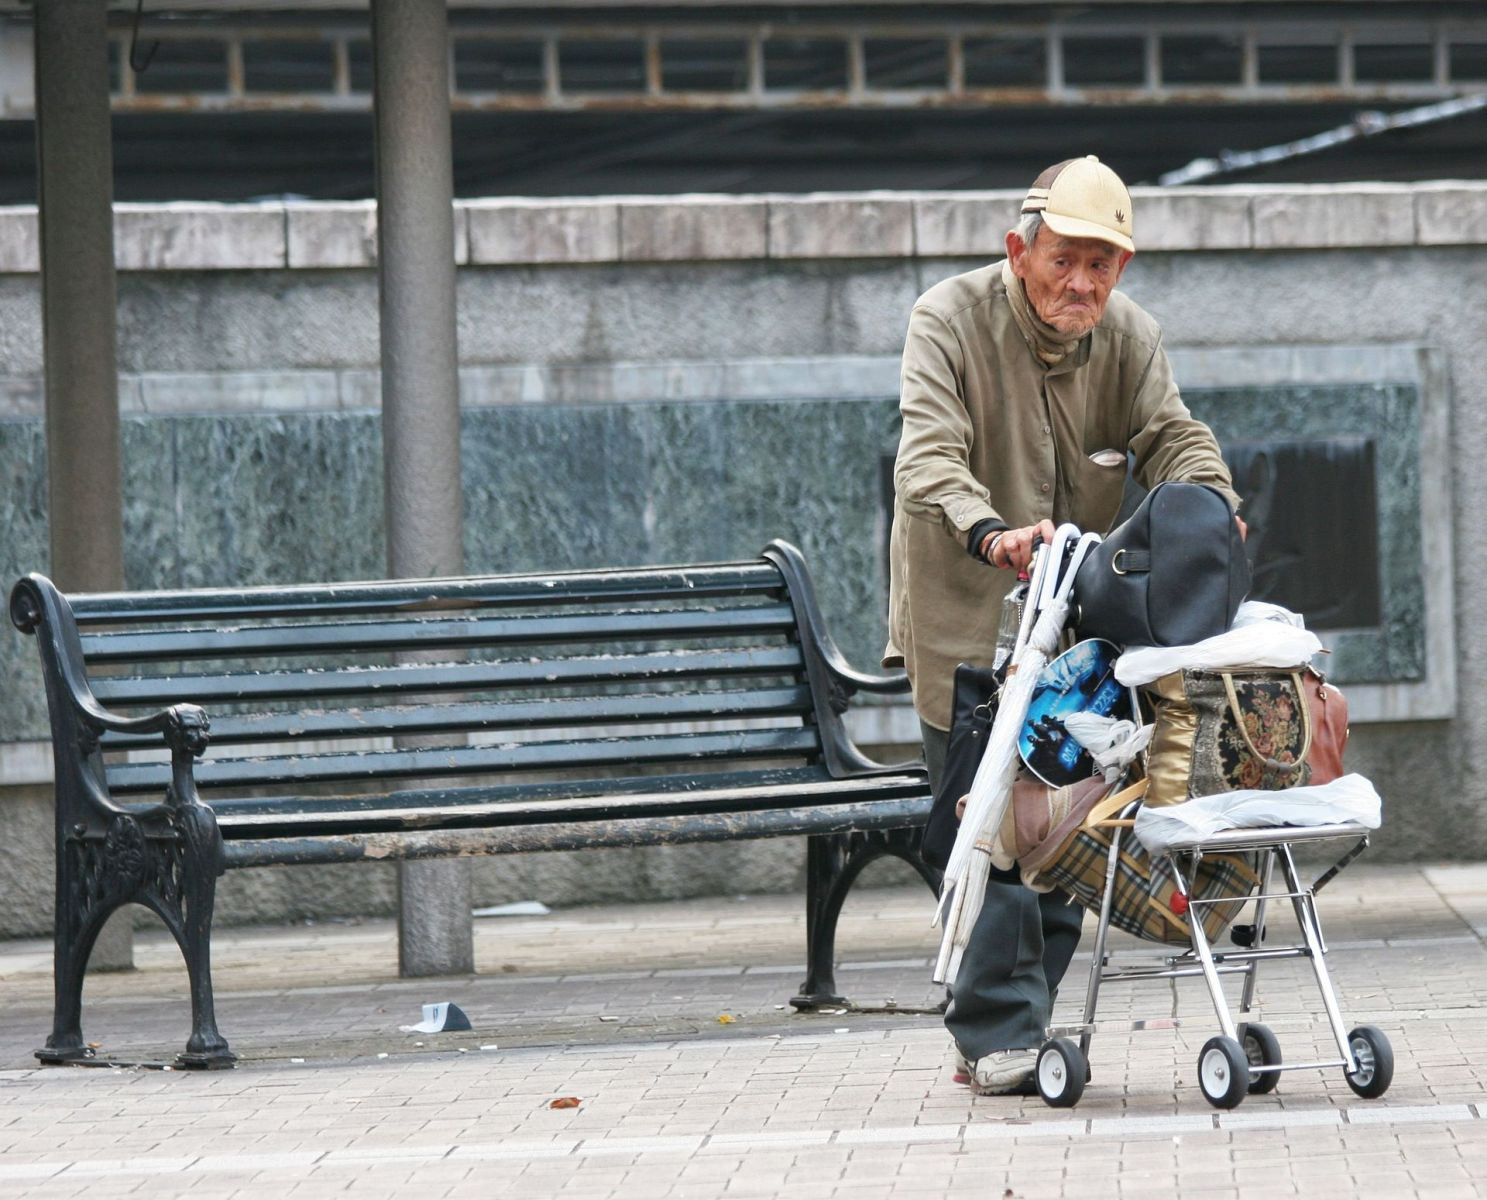 Japanese_Man-Elderly.JPG